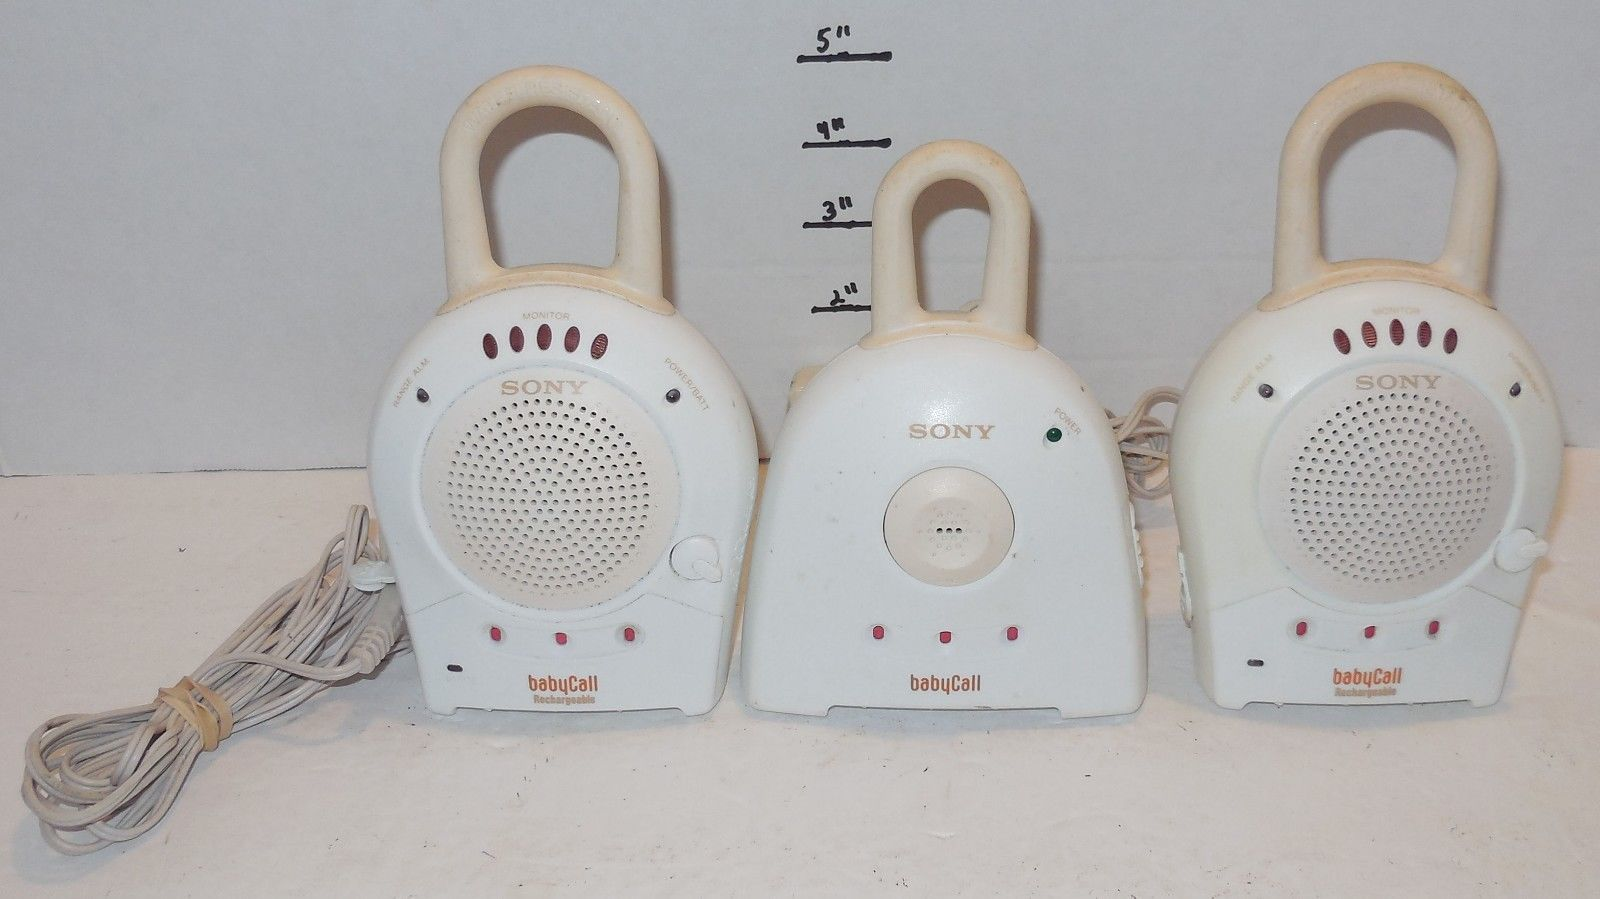 Sony NTM910 900MHz Baby Call Nursery Monitor And Similar Items 57